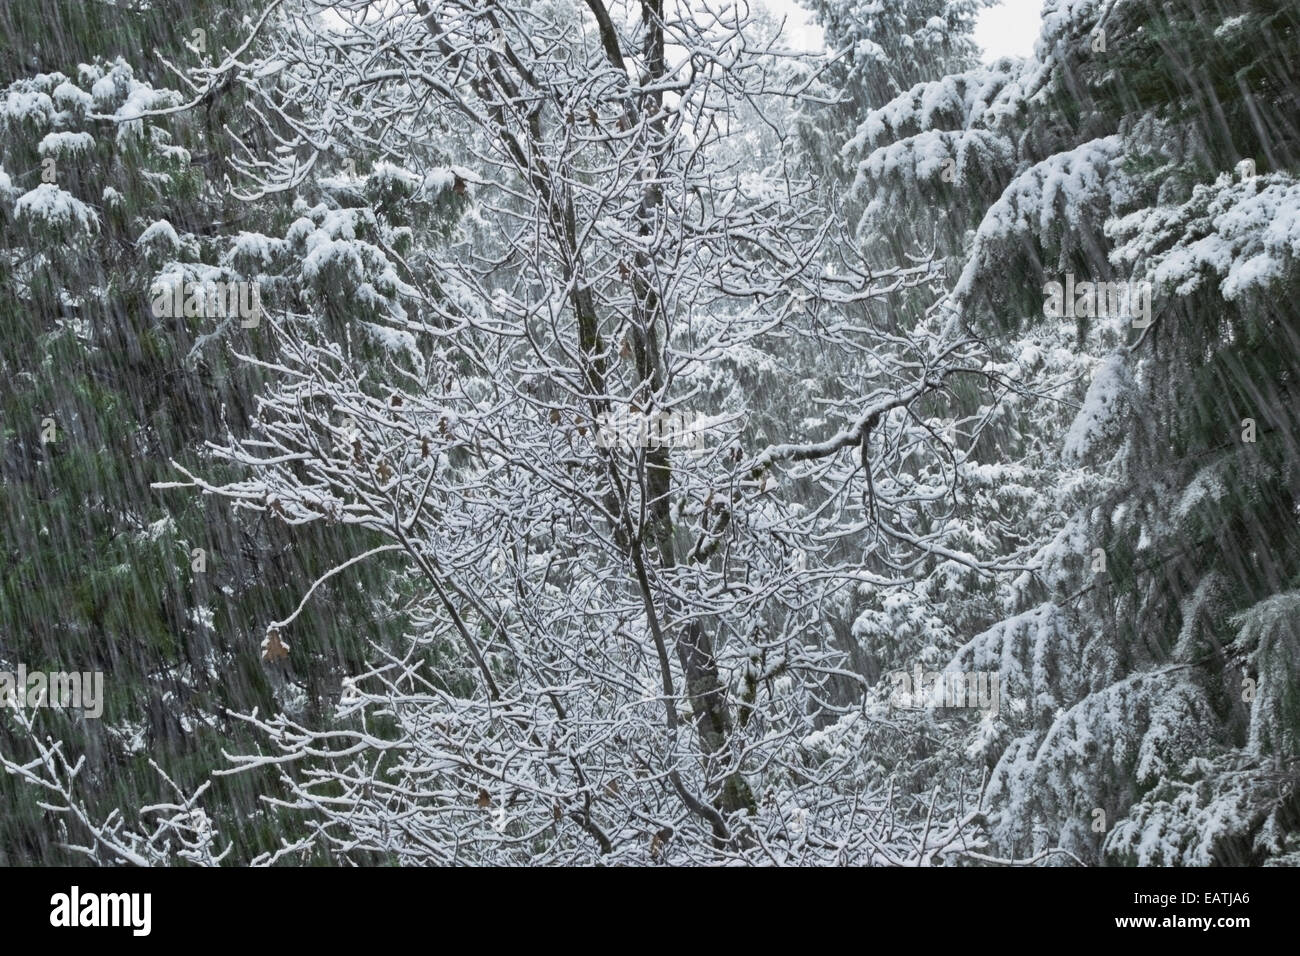 Forest of Black Oak, Dogwood, Madrone, Cedar and Fir is showered by a late spring snowfall. Northern California. - Stock Image